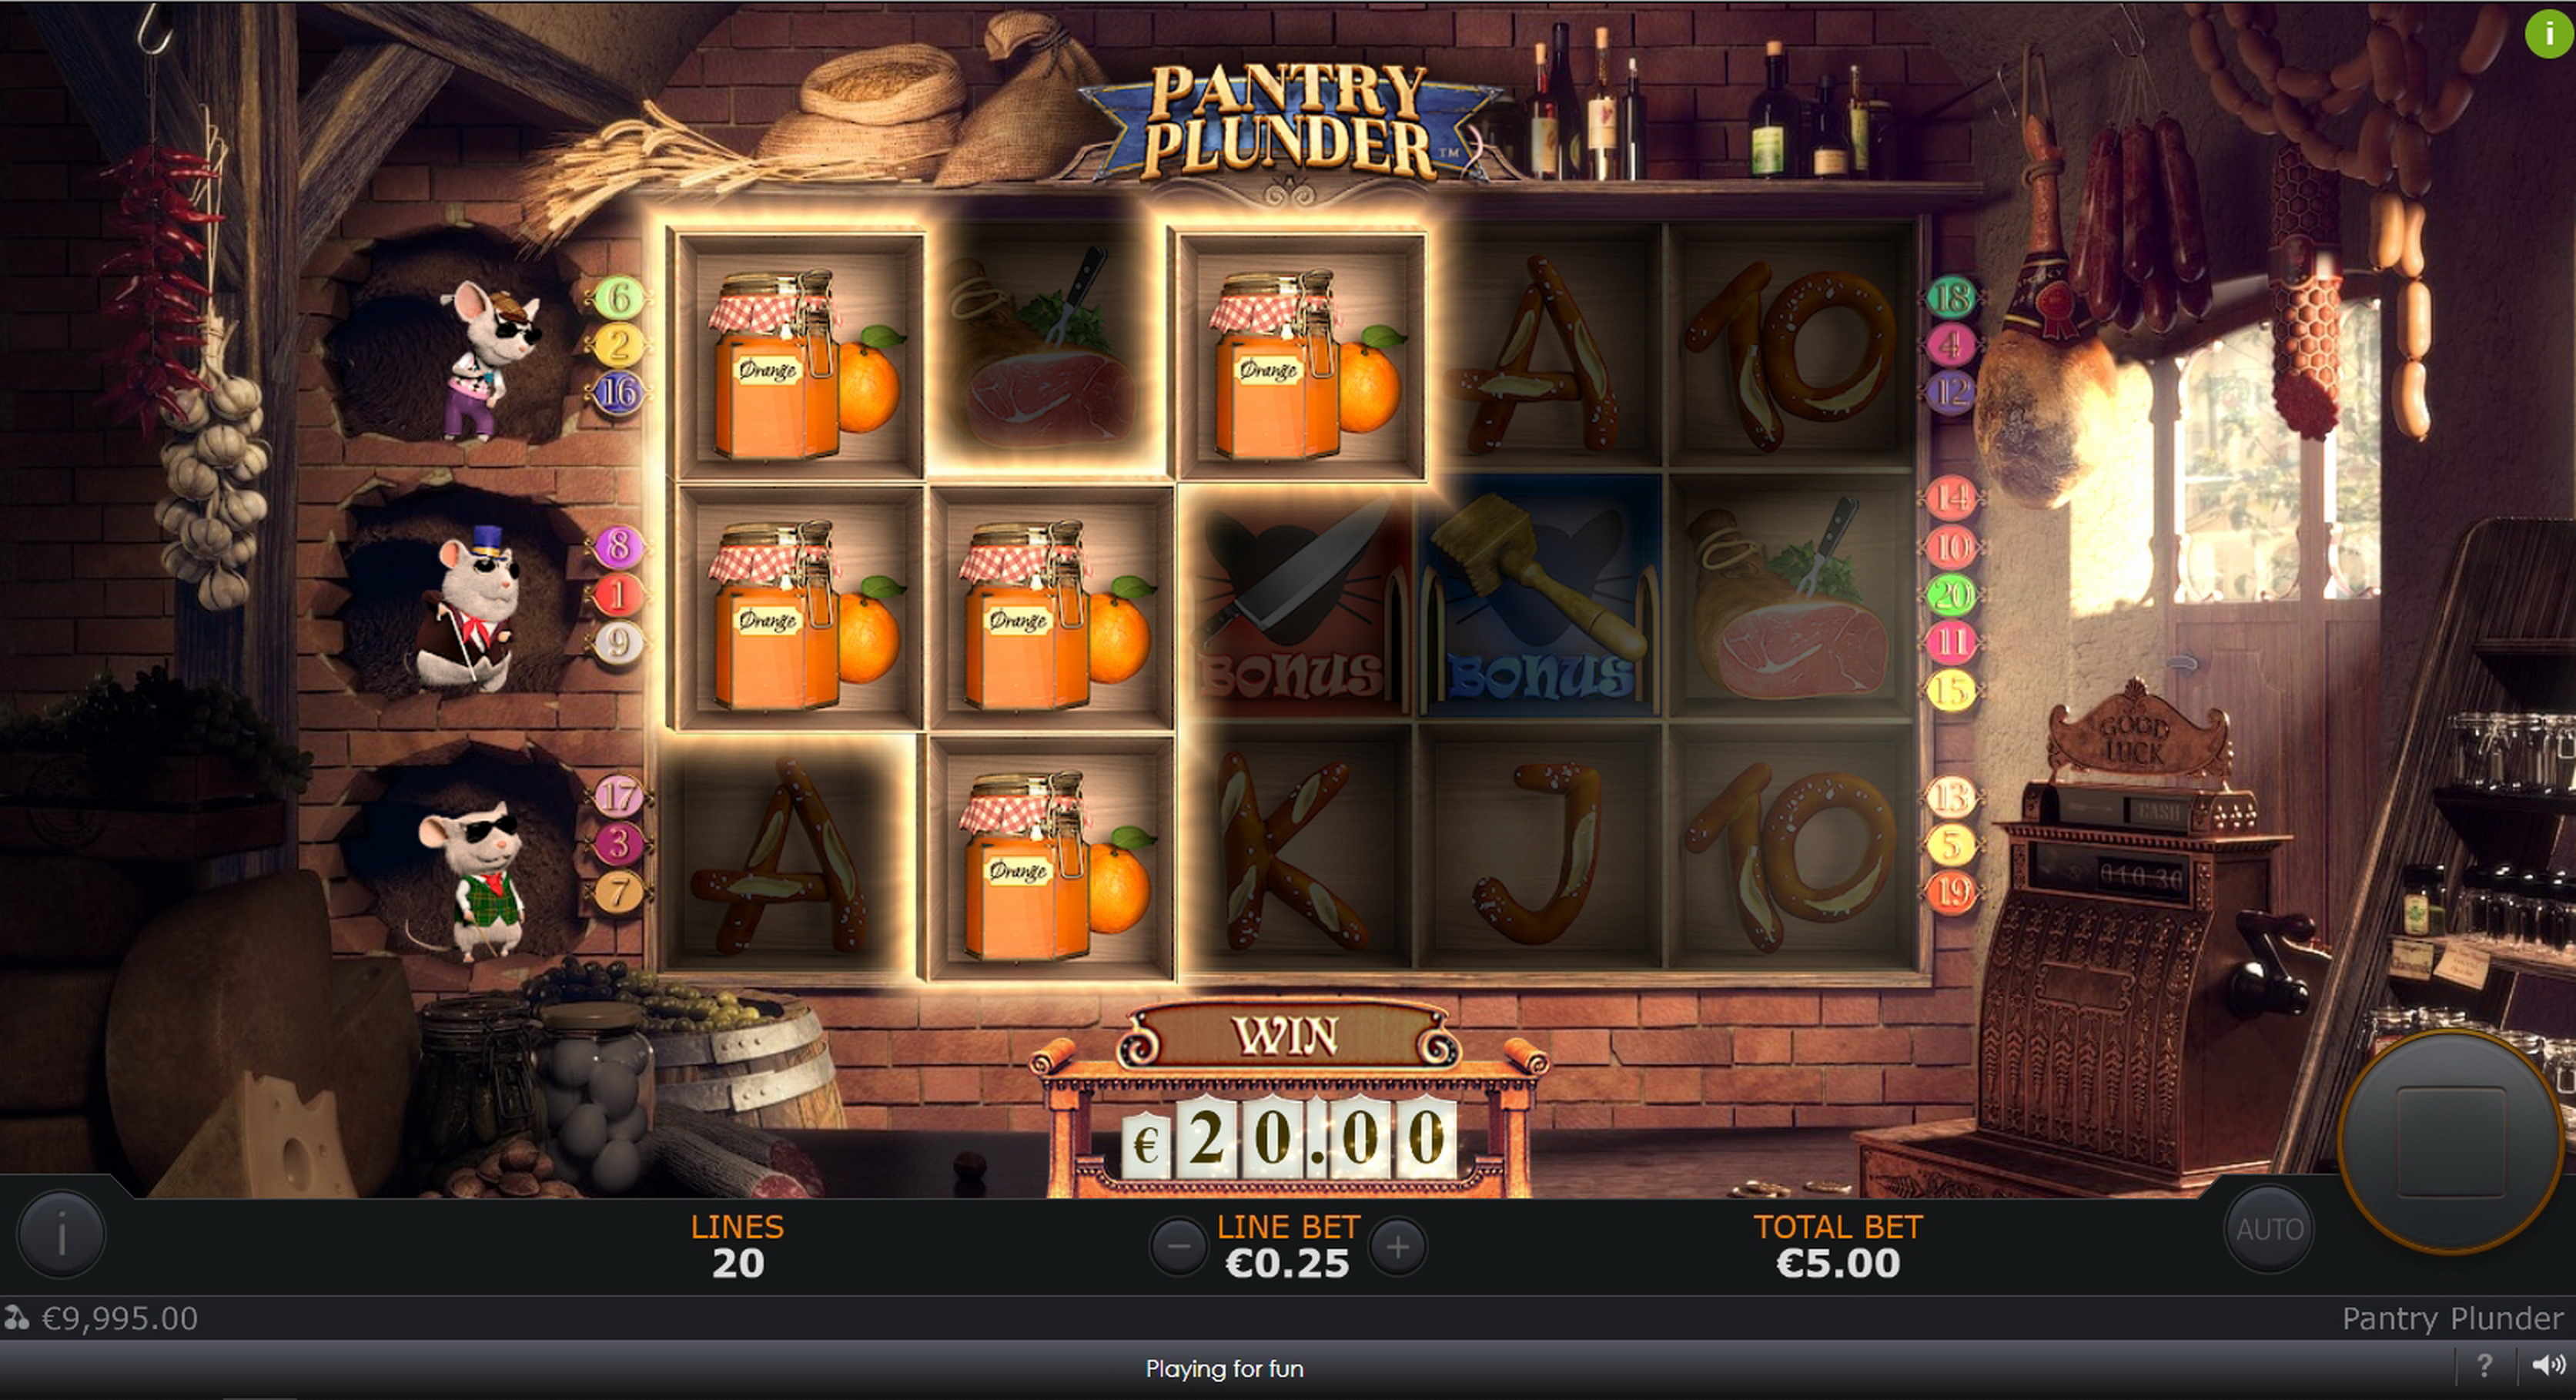 Win Money in Pantry Plunder Free Slot Game by SUNFOX Games